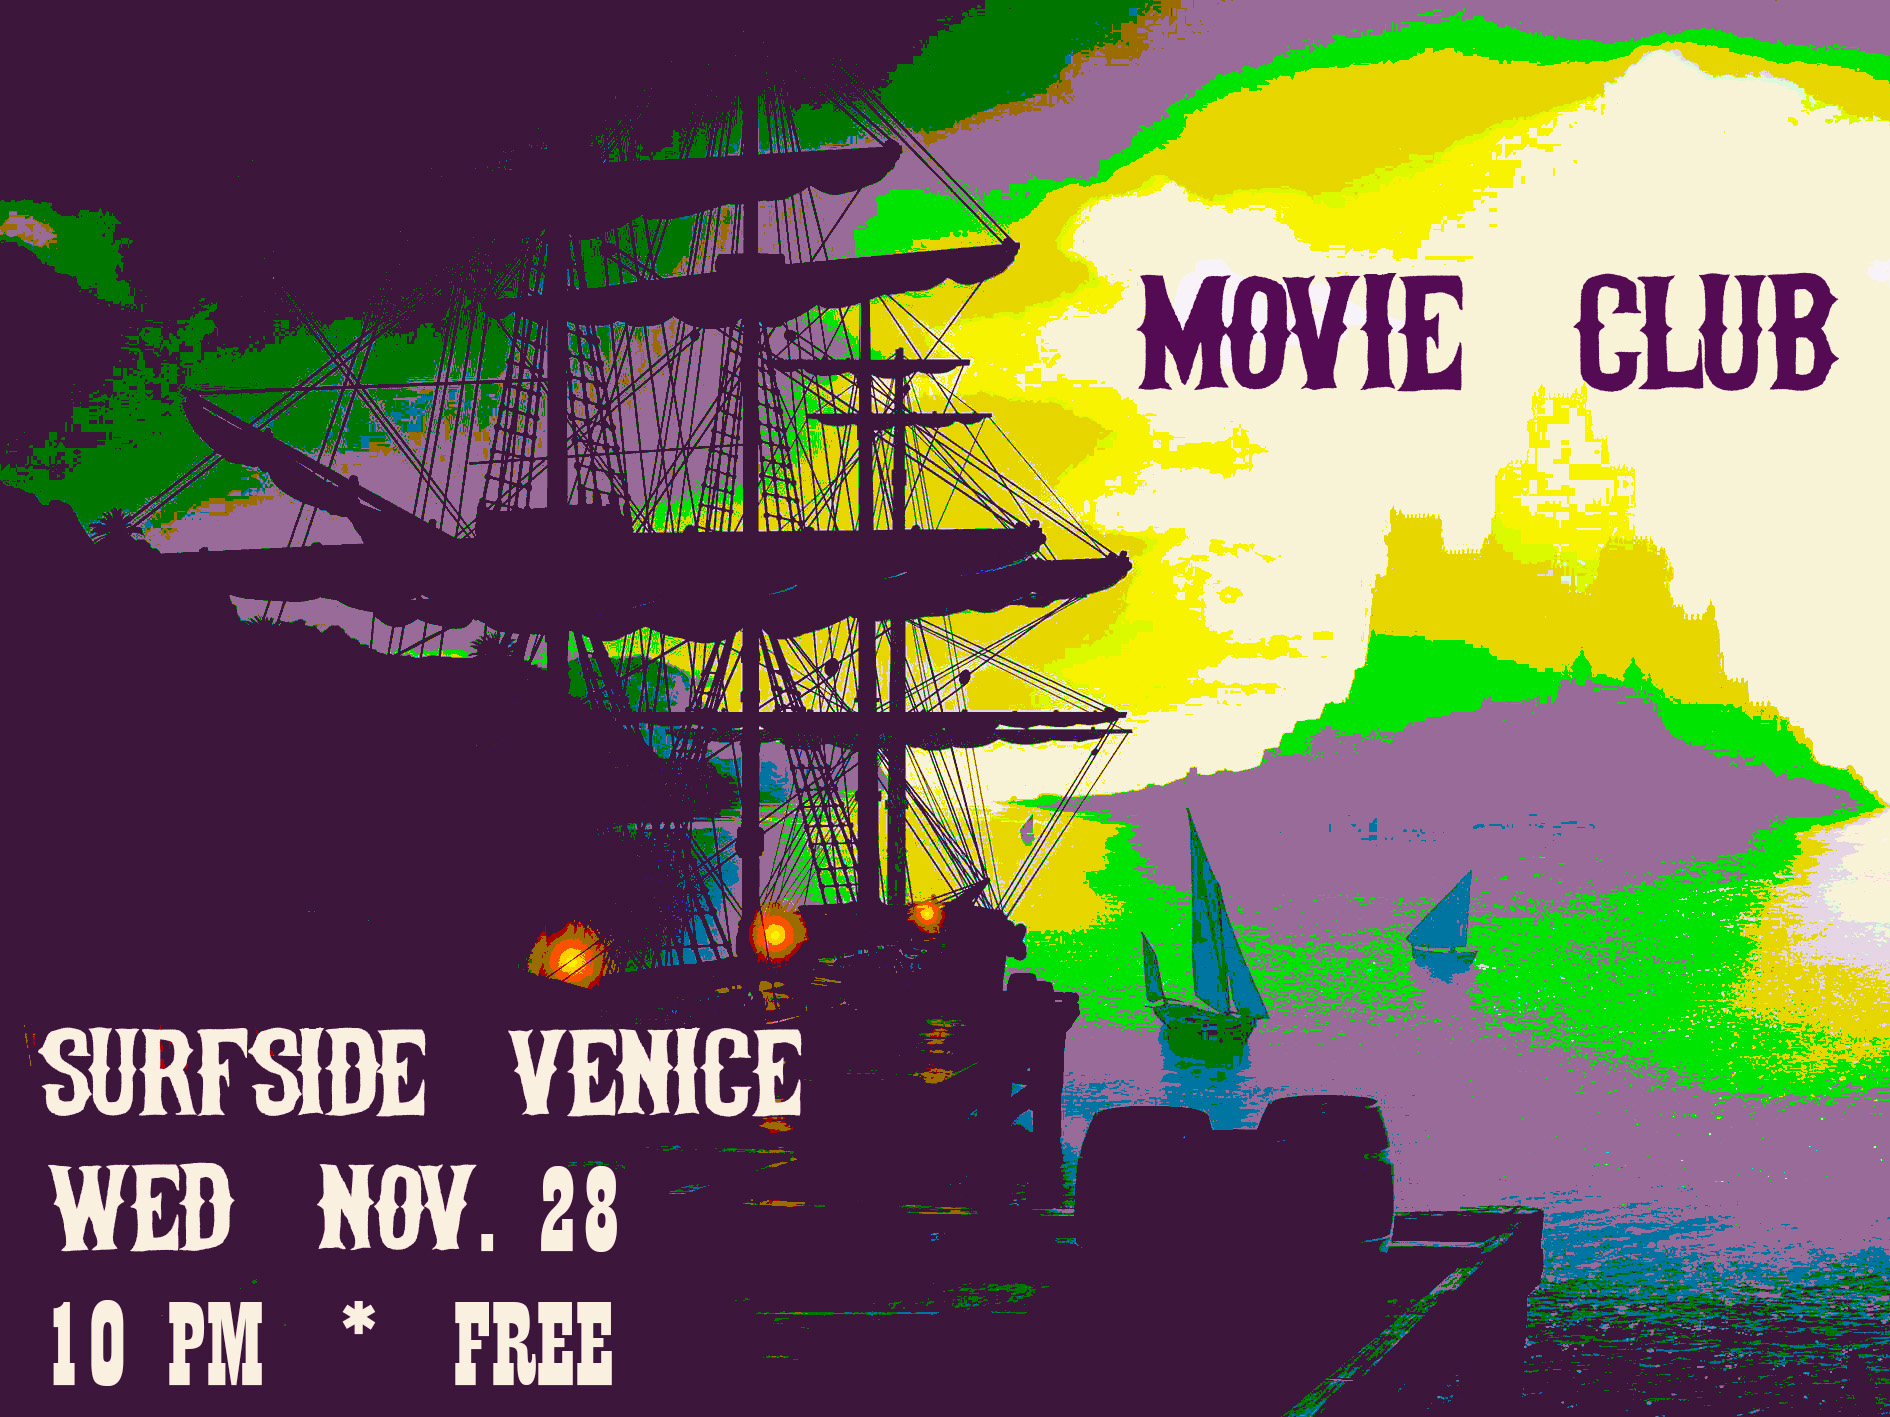 11/28/18 MOVIE CLUB Live at    Surfside Venice    - FREE SHOW @ 10PM